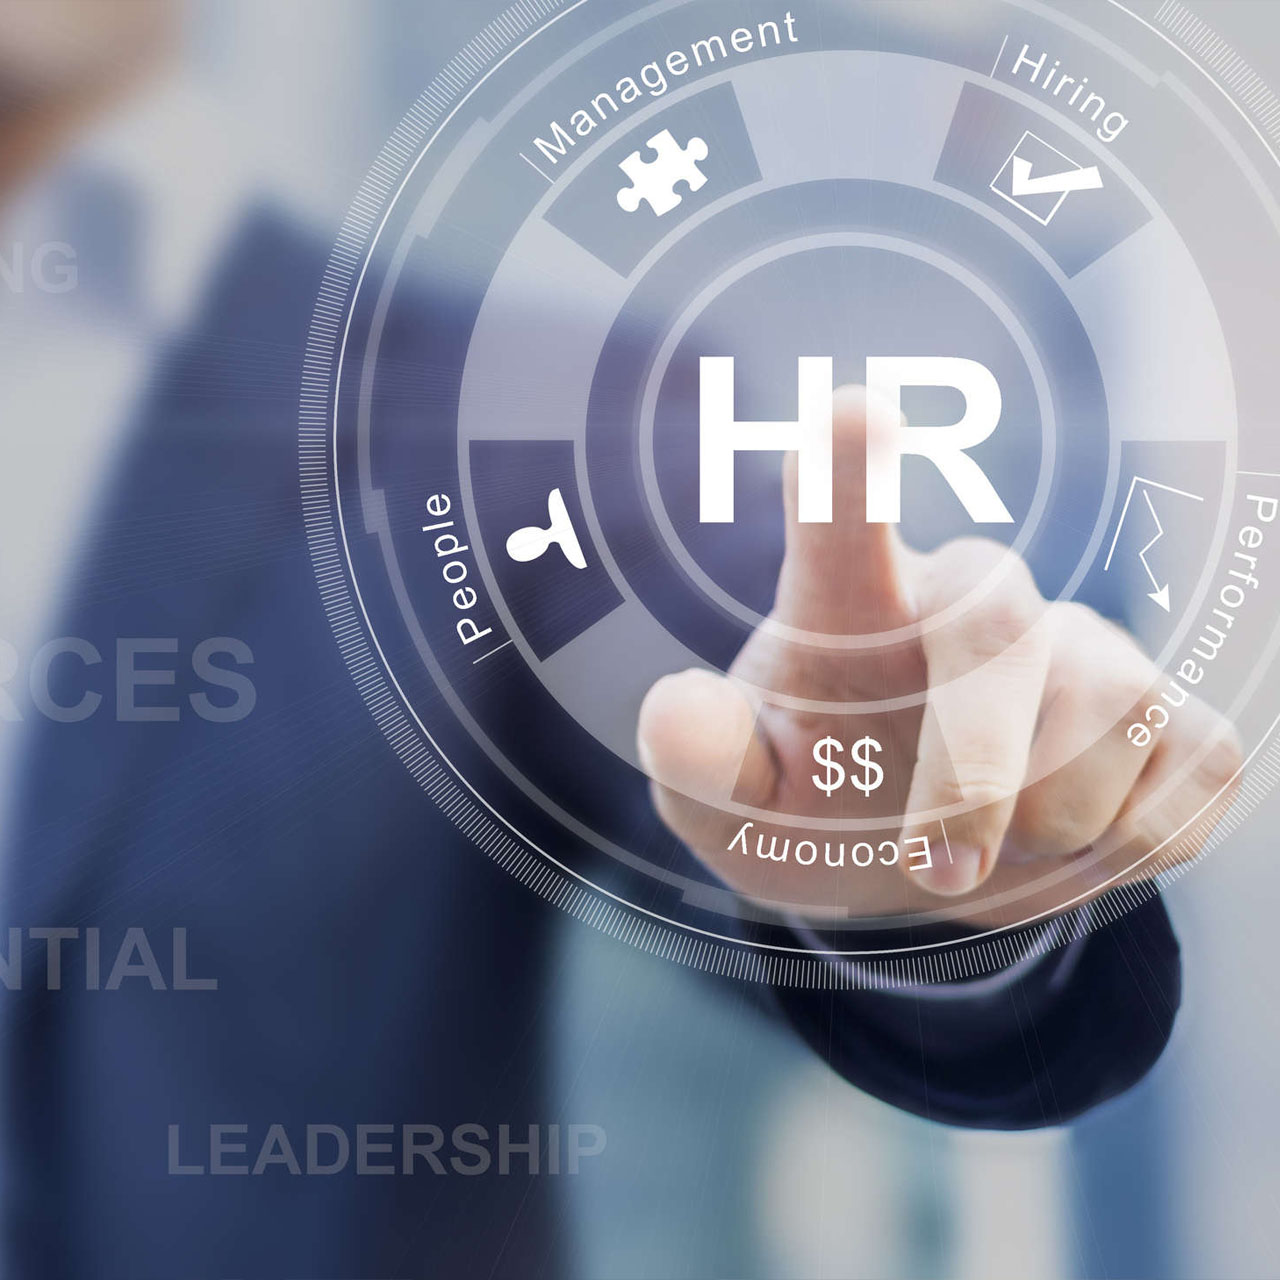 human resources outsourcing and executive coaching services